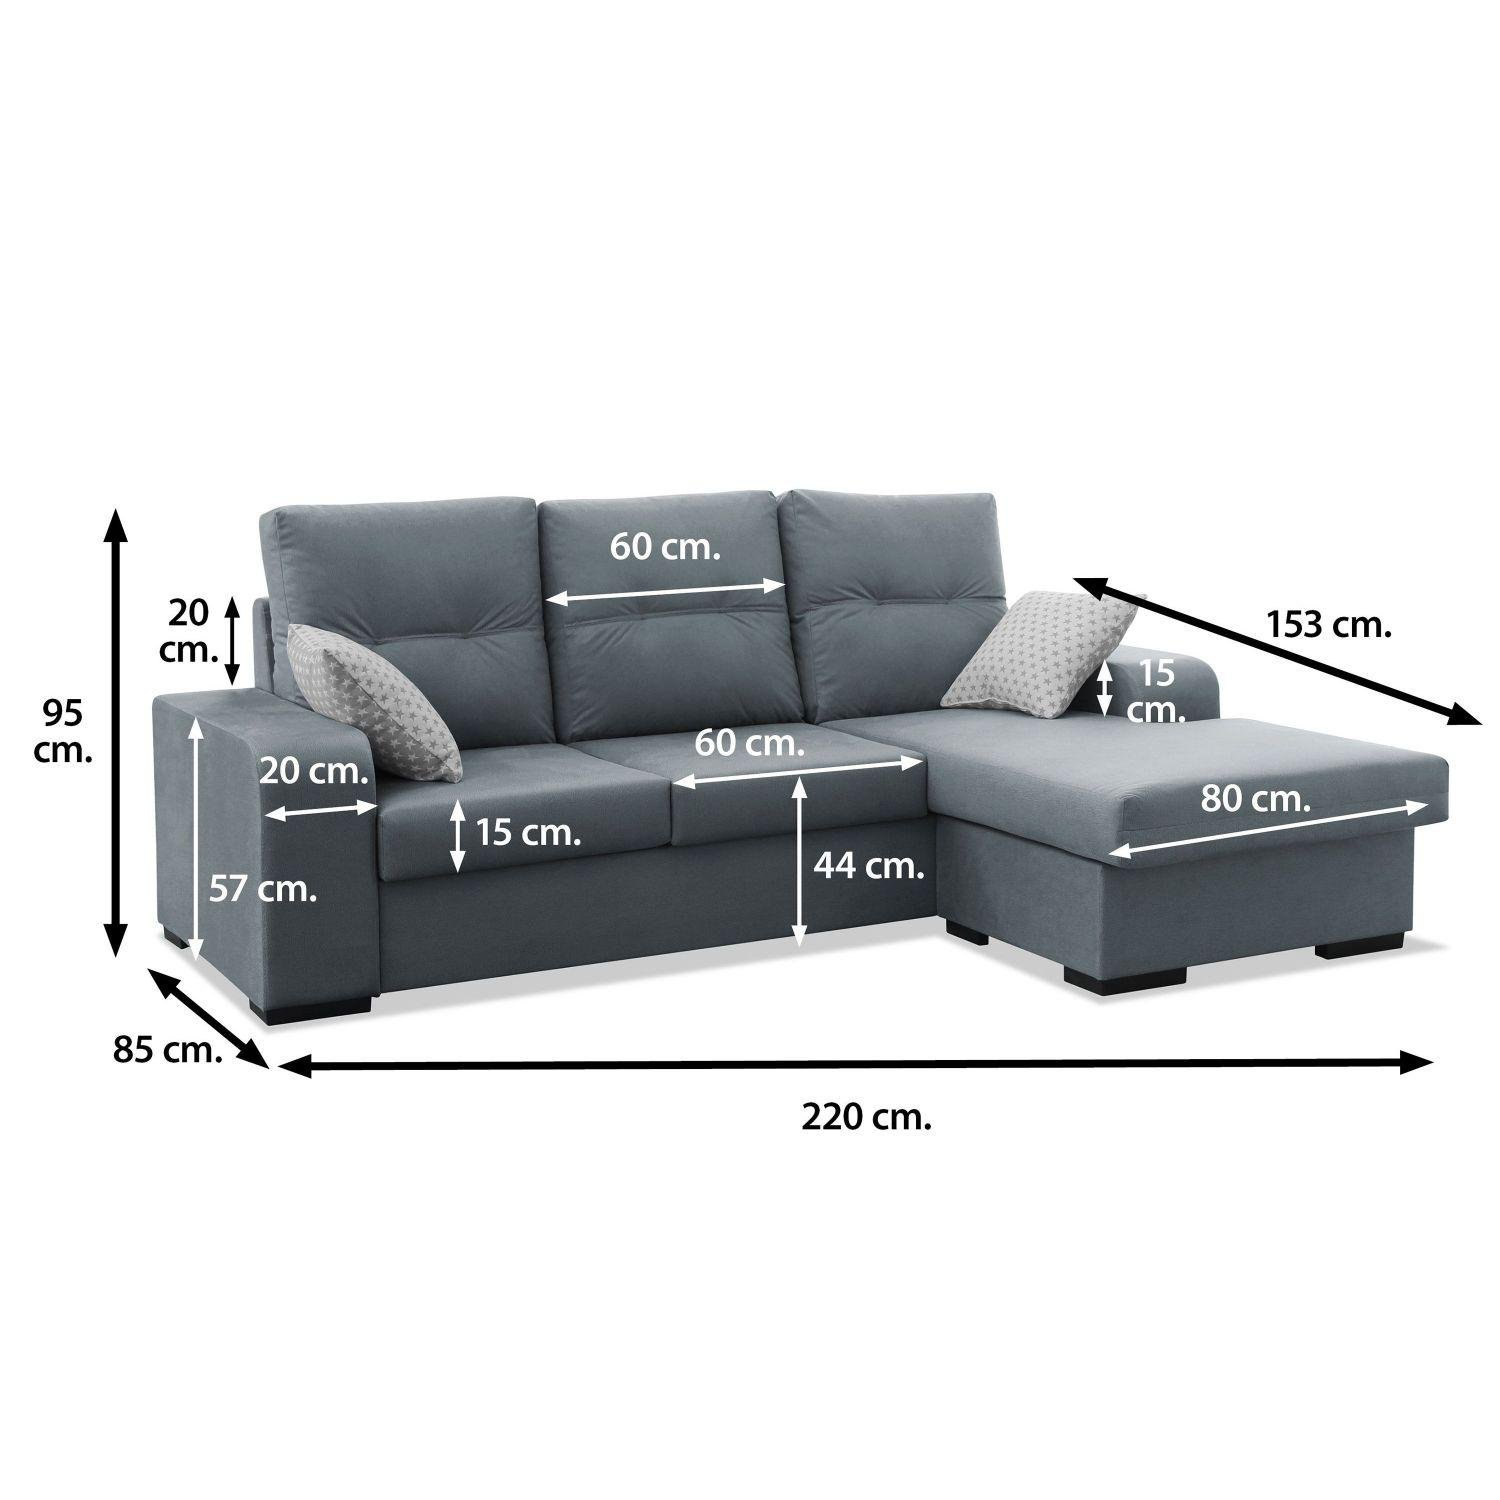 Mueble Sofa con Chaise Longue 3 plazas color gris cheslong ...